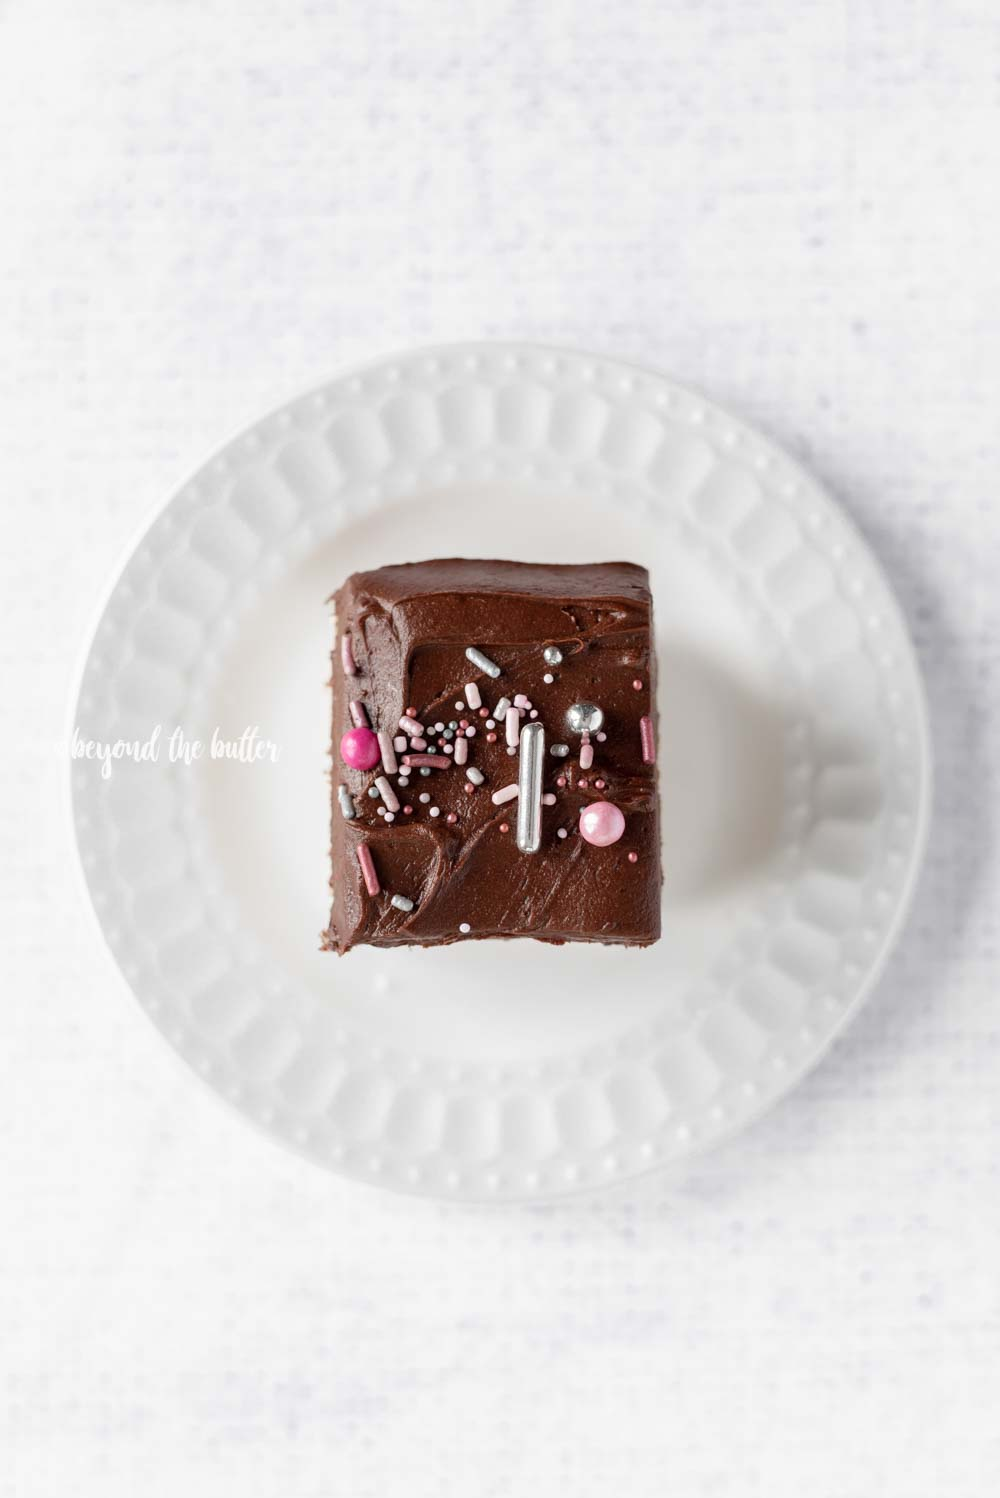 Single slice of Classic 4 Egg Yellow Sheet Cake with Chocolate Frosting and sprinkles on a dessert plate | All Images © Beyond the Butter, LLC